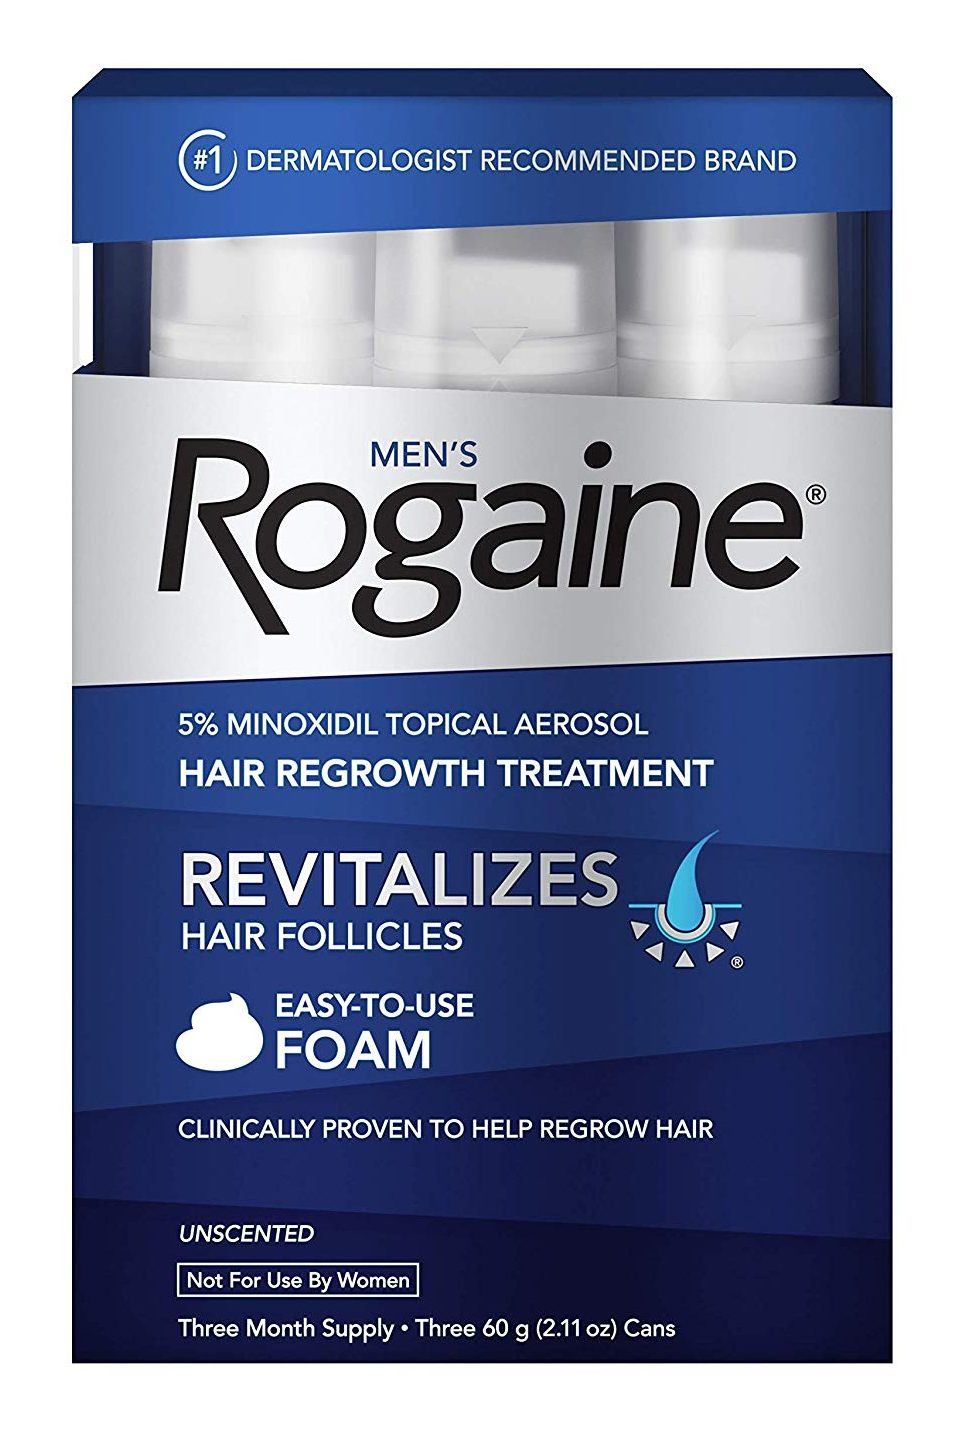 minoxidil topical treatment for men, hair growth products for men, how to make your hair thicker